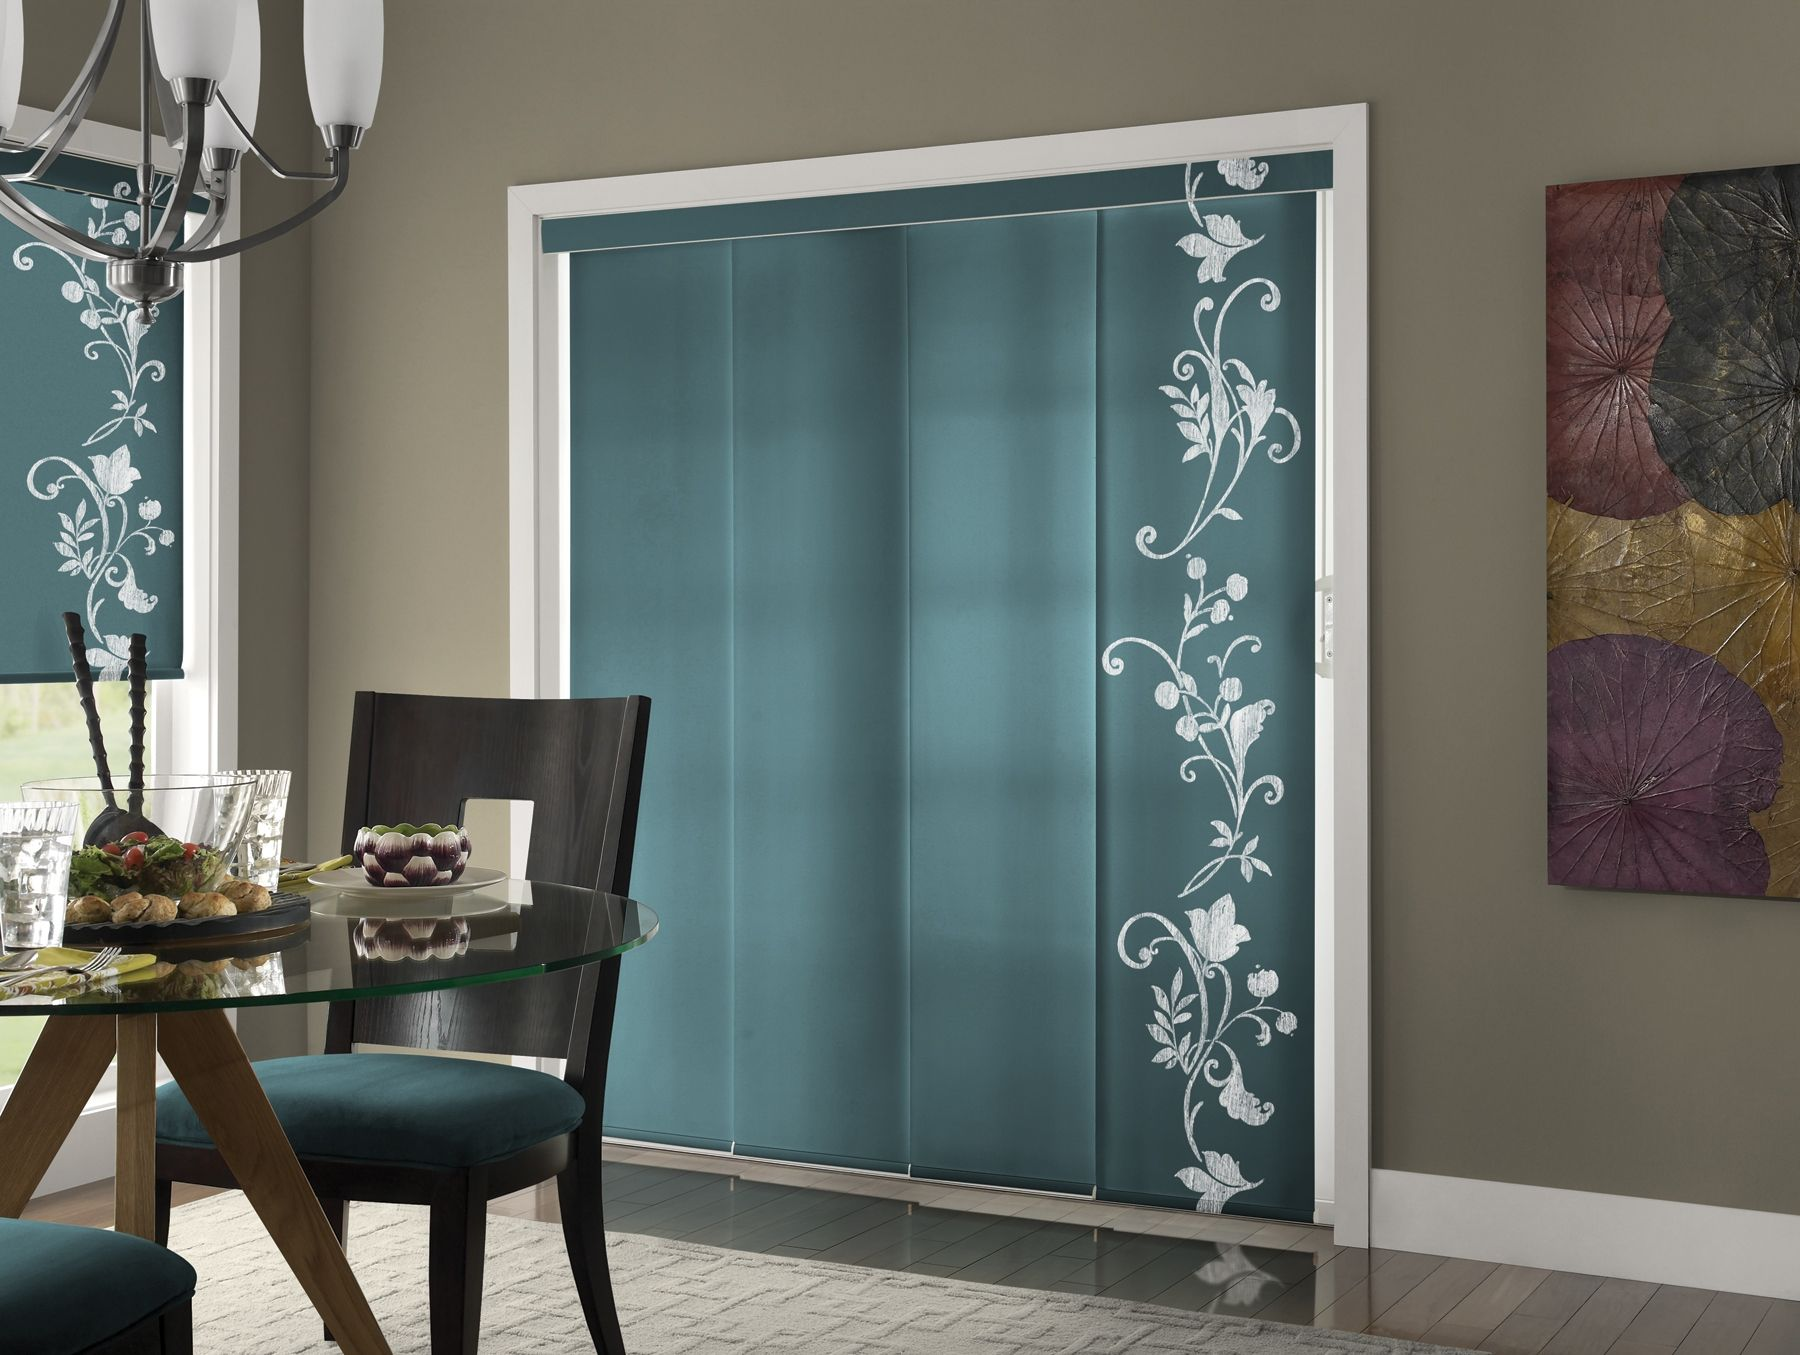 Sliding Glass Door Panel Track Blinds Home Windows Dressing